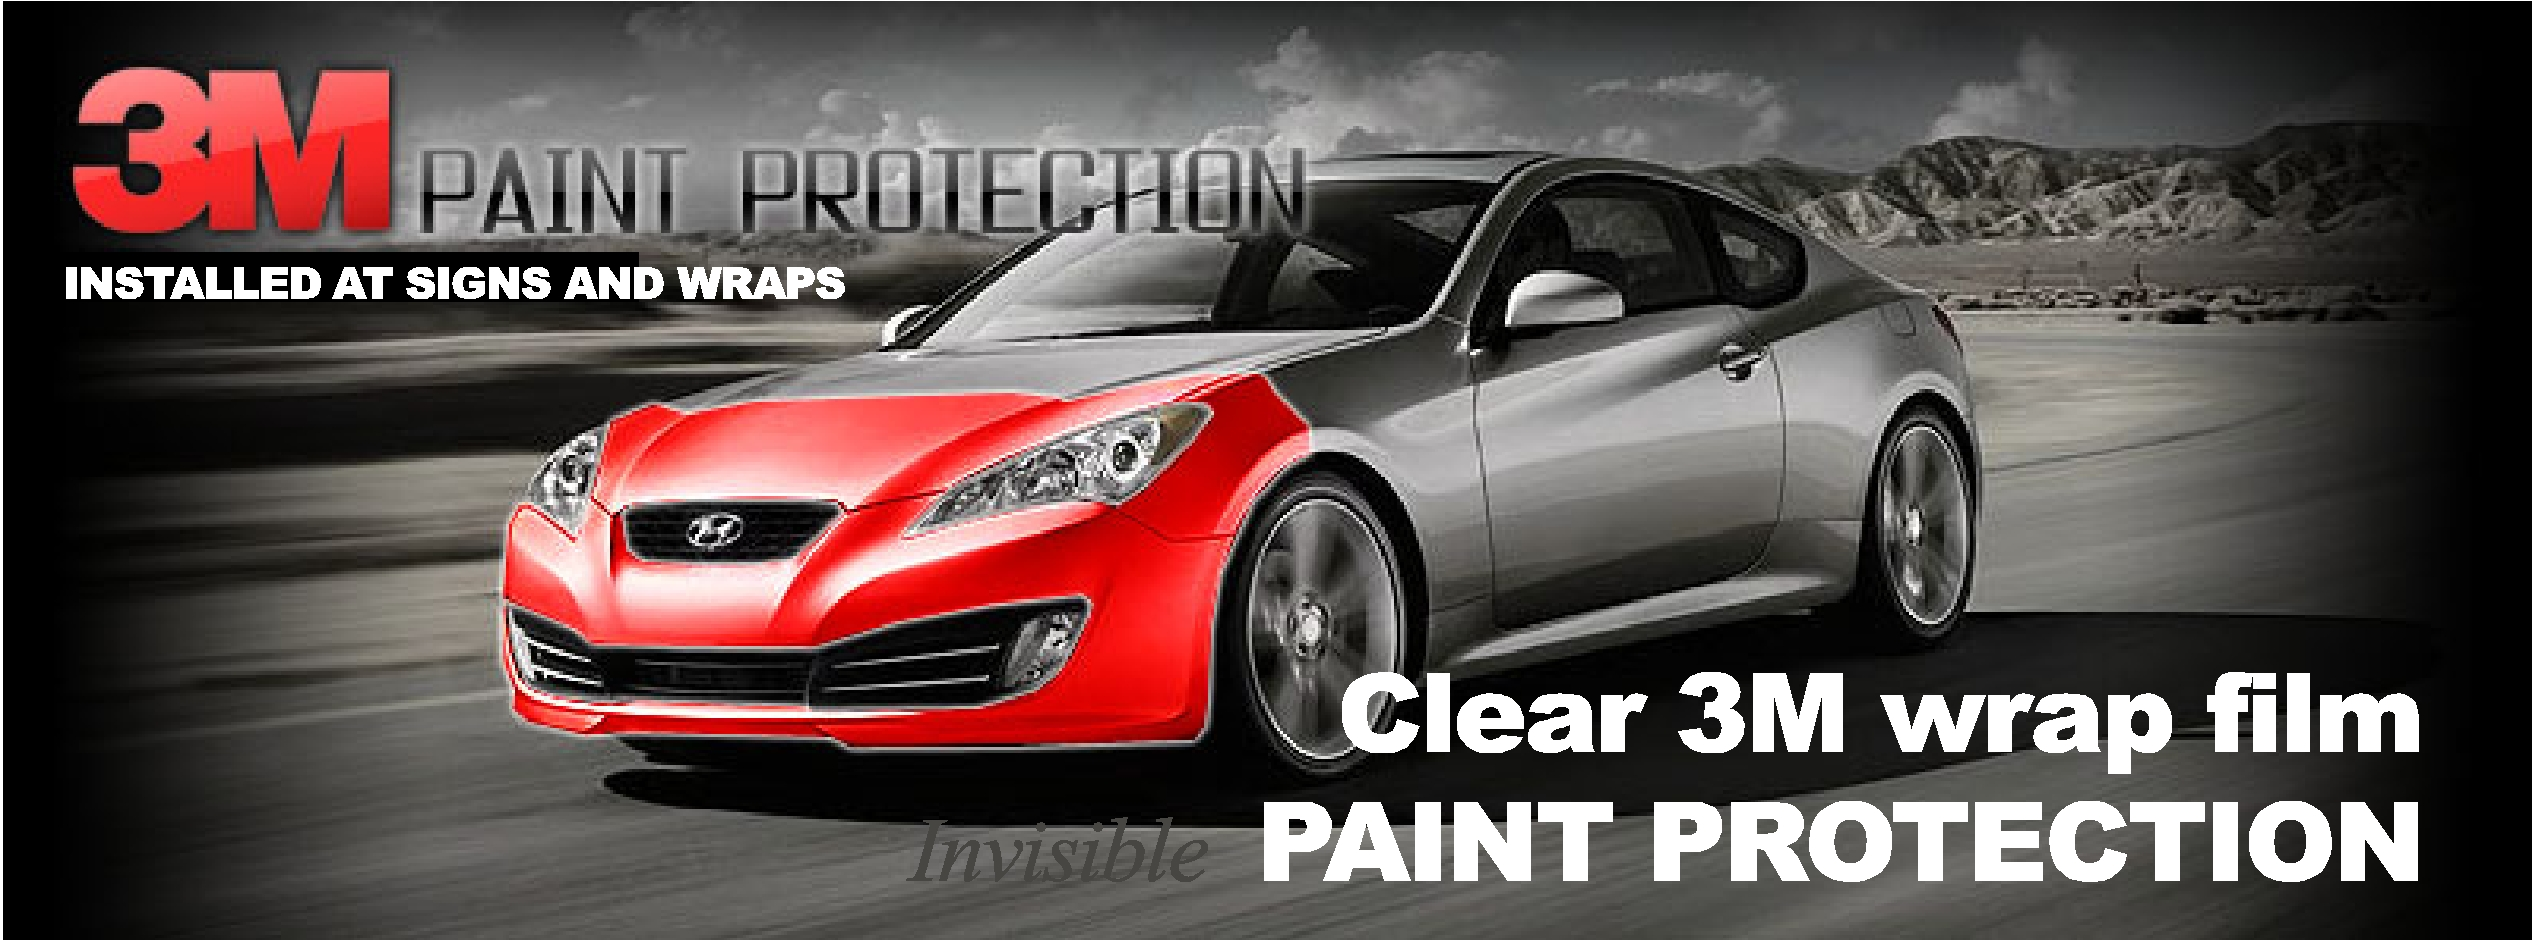 8x11 3M Paint Protection flyer 110315